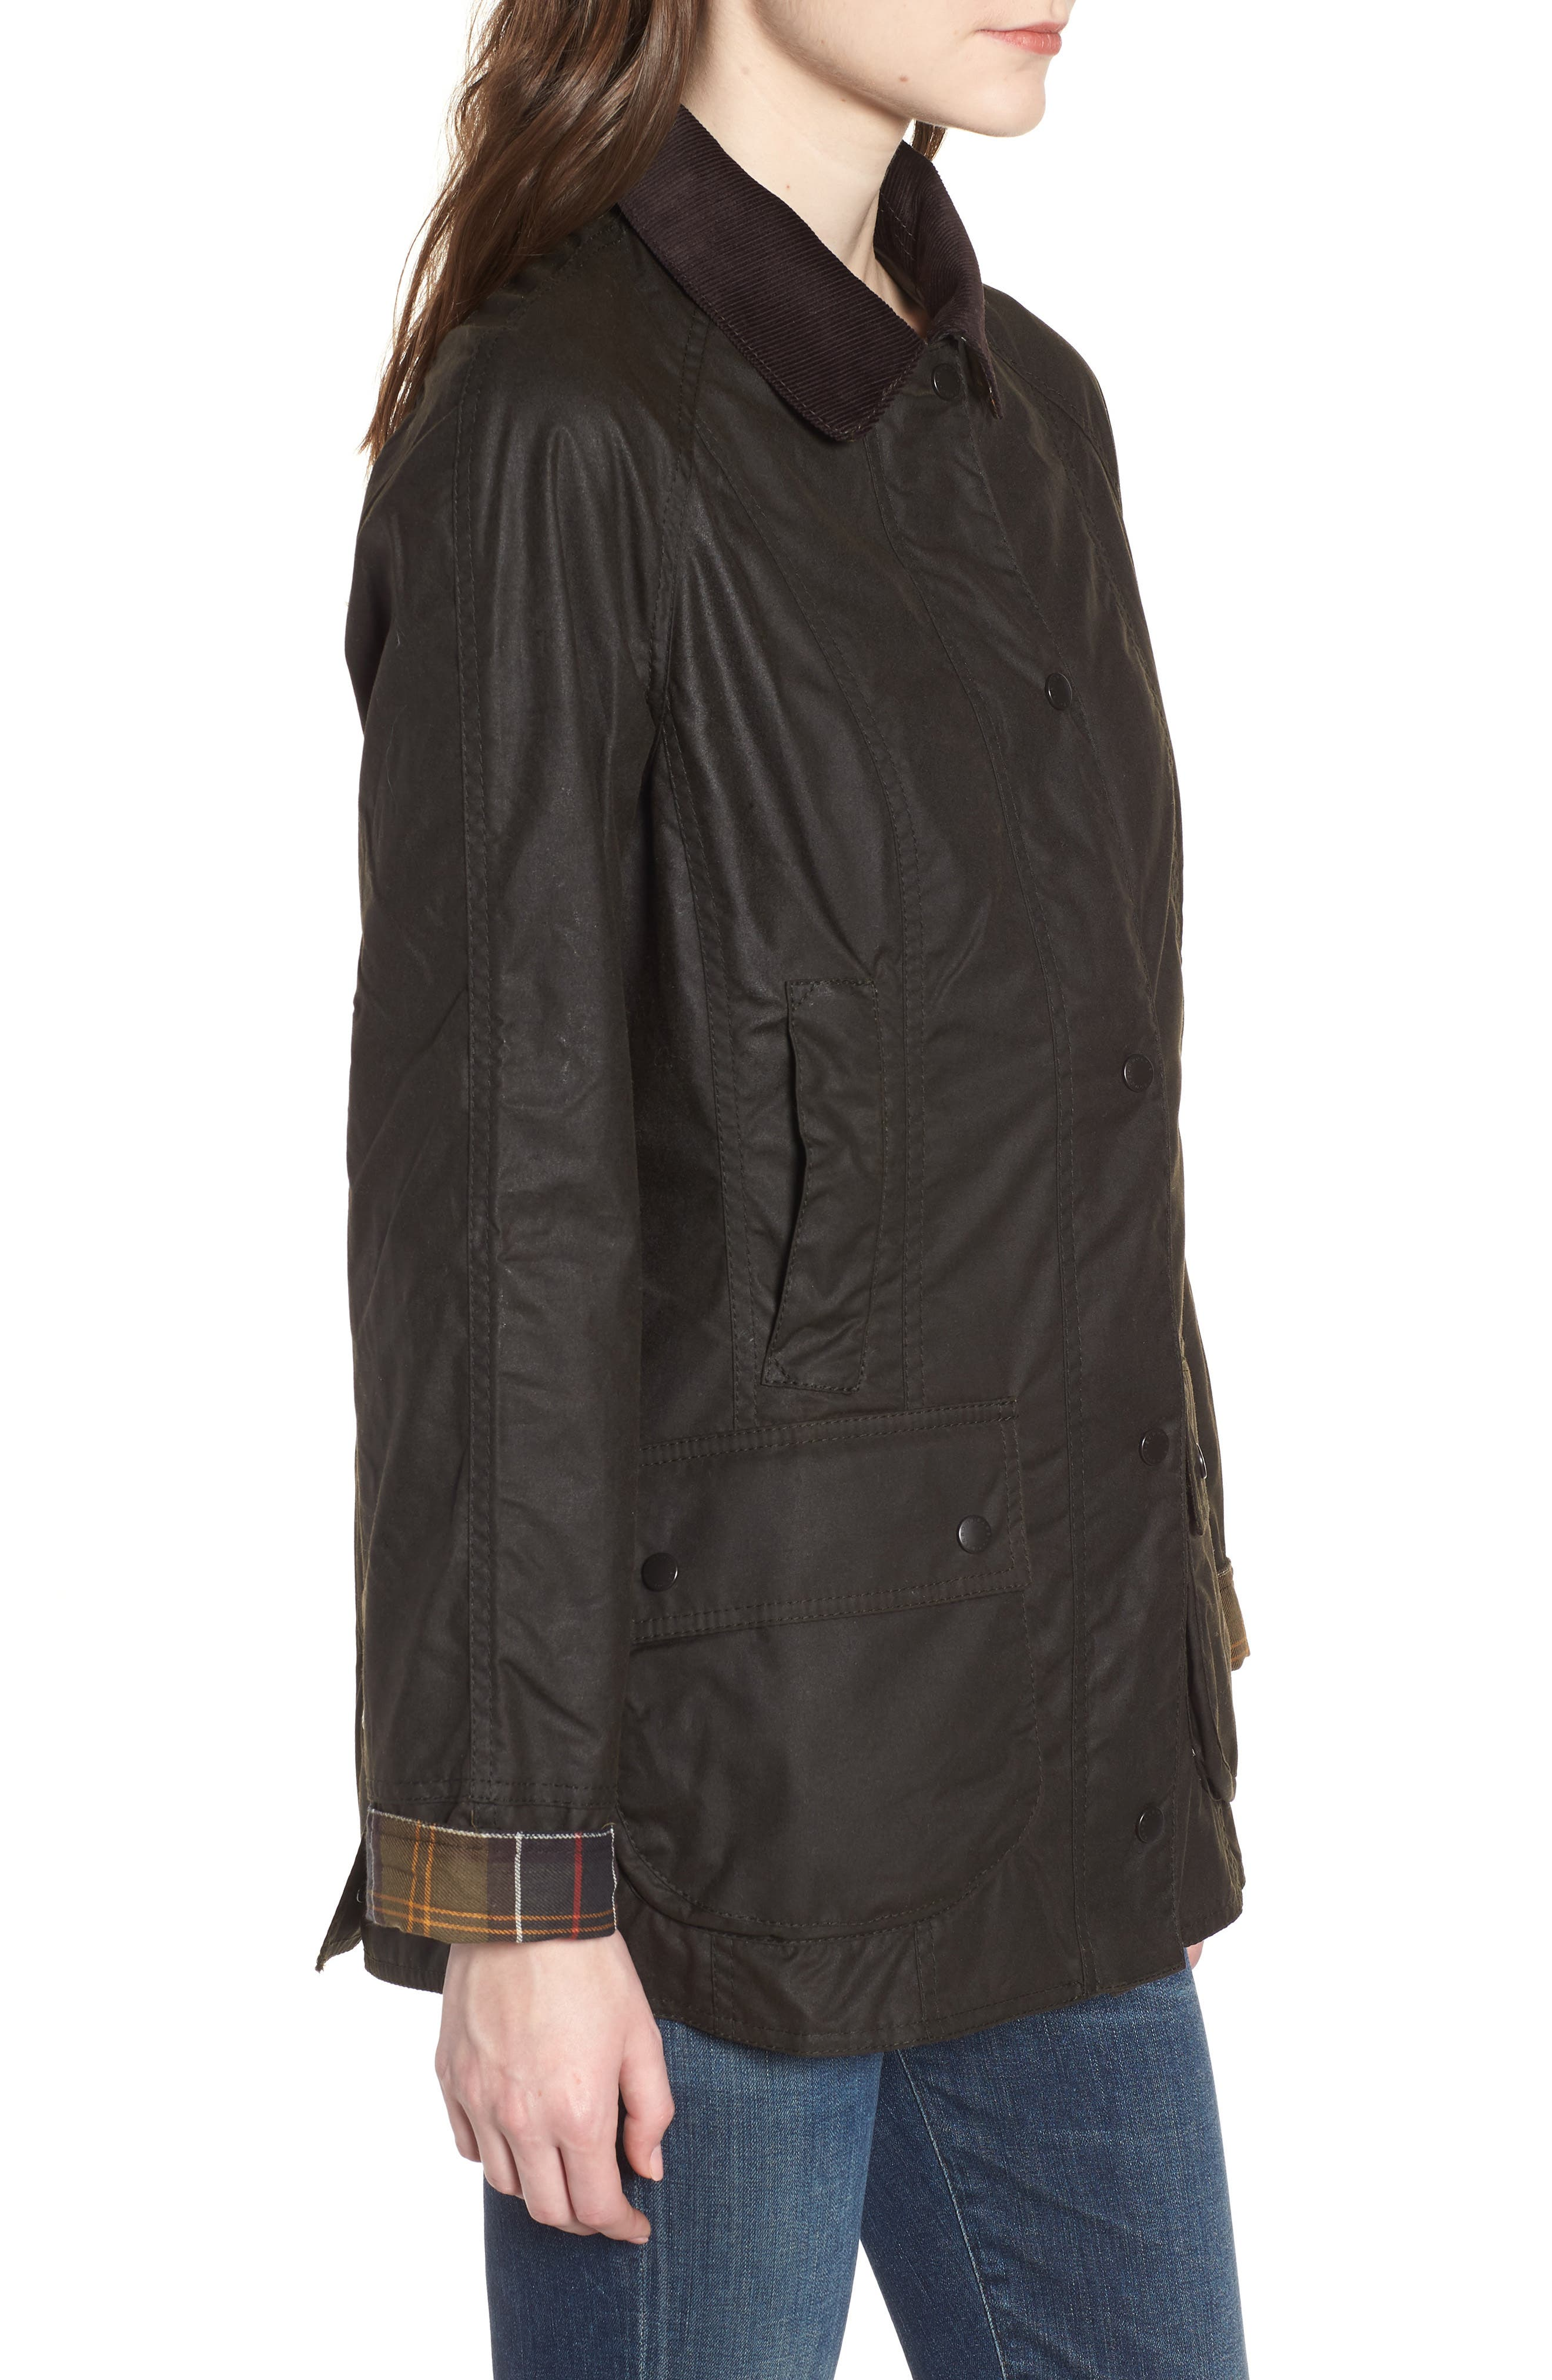 Beadnell Waxed Cotton Jacket,                             Alternate thumbnail 3, color,                             Olive